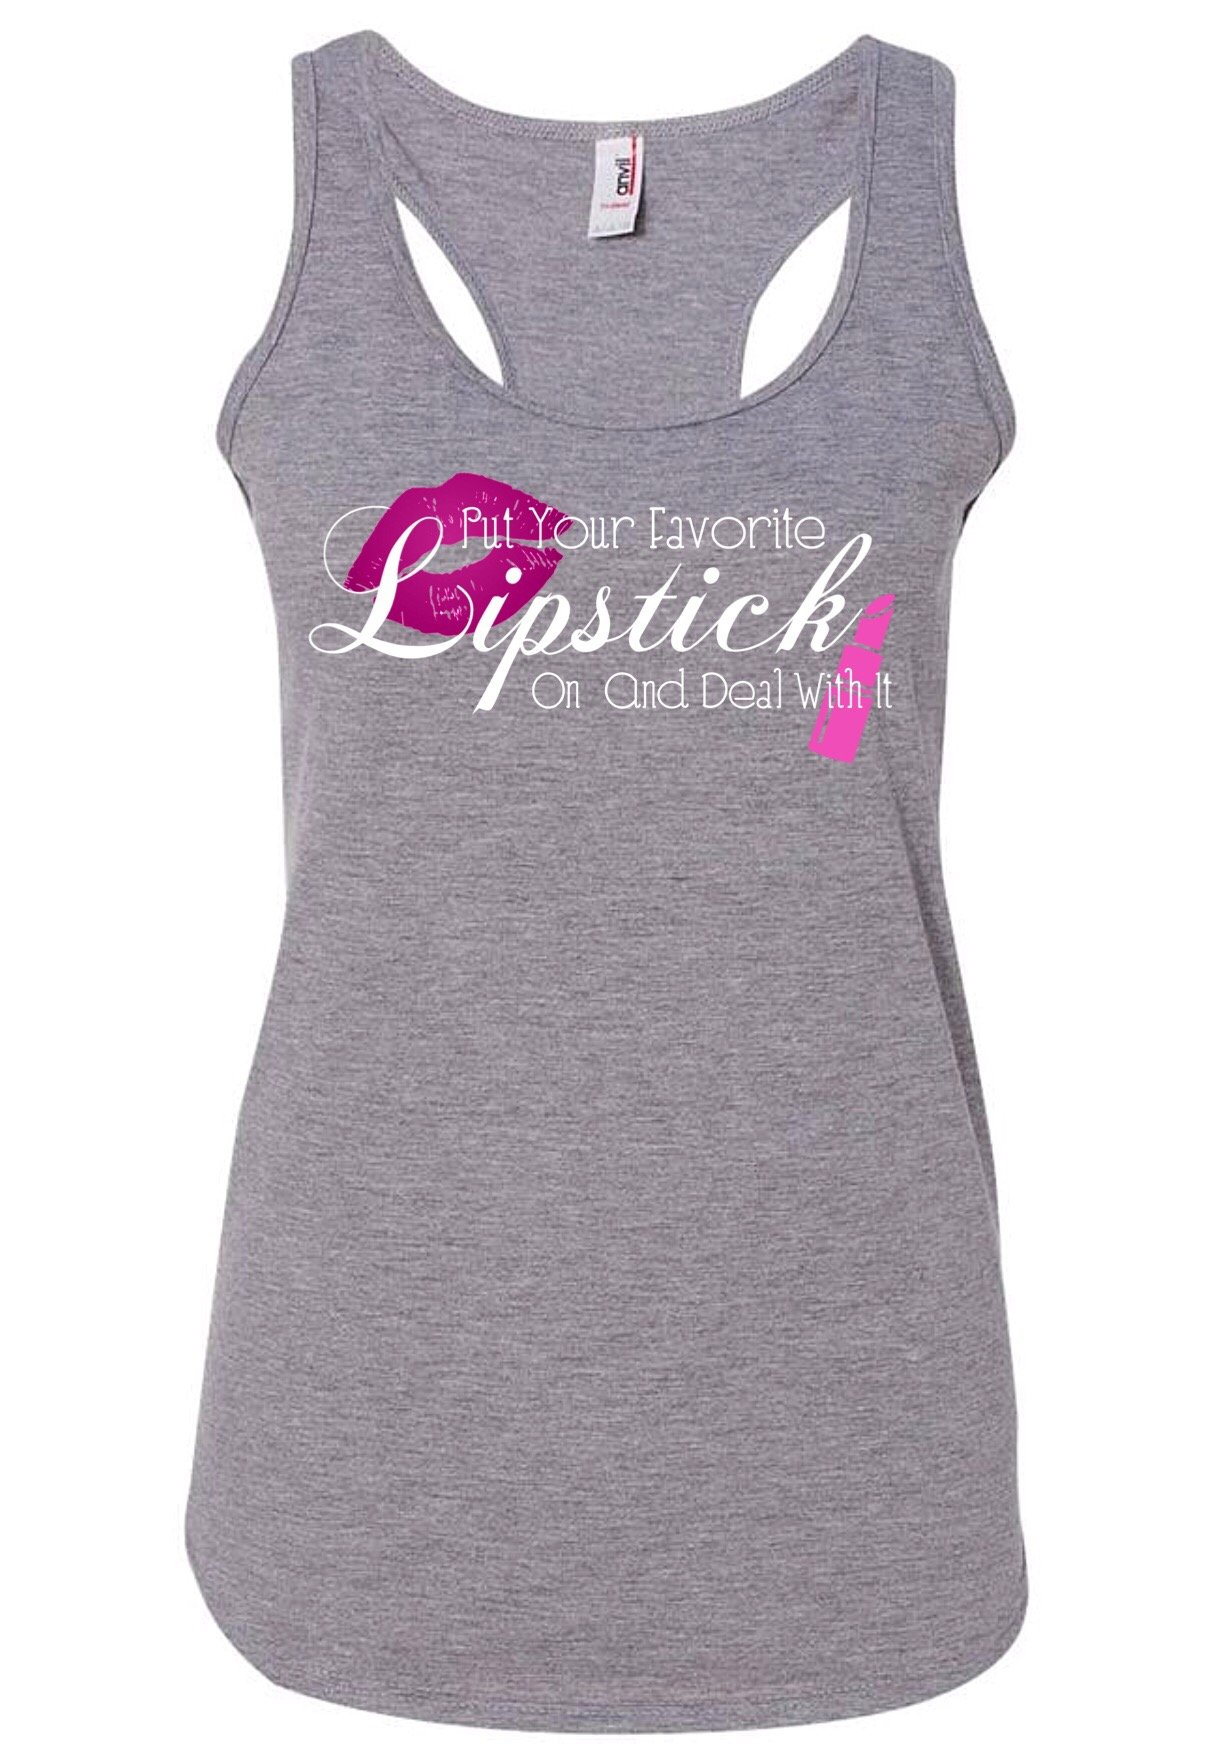 Woman's Tank Top - Lipstick Quote